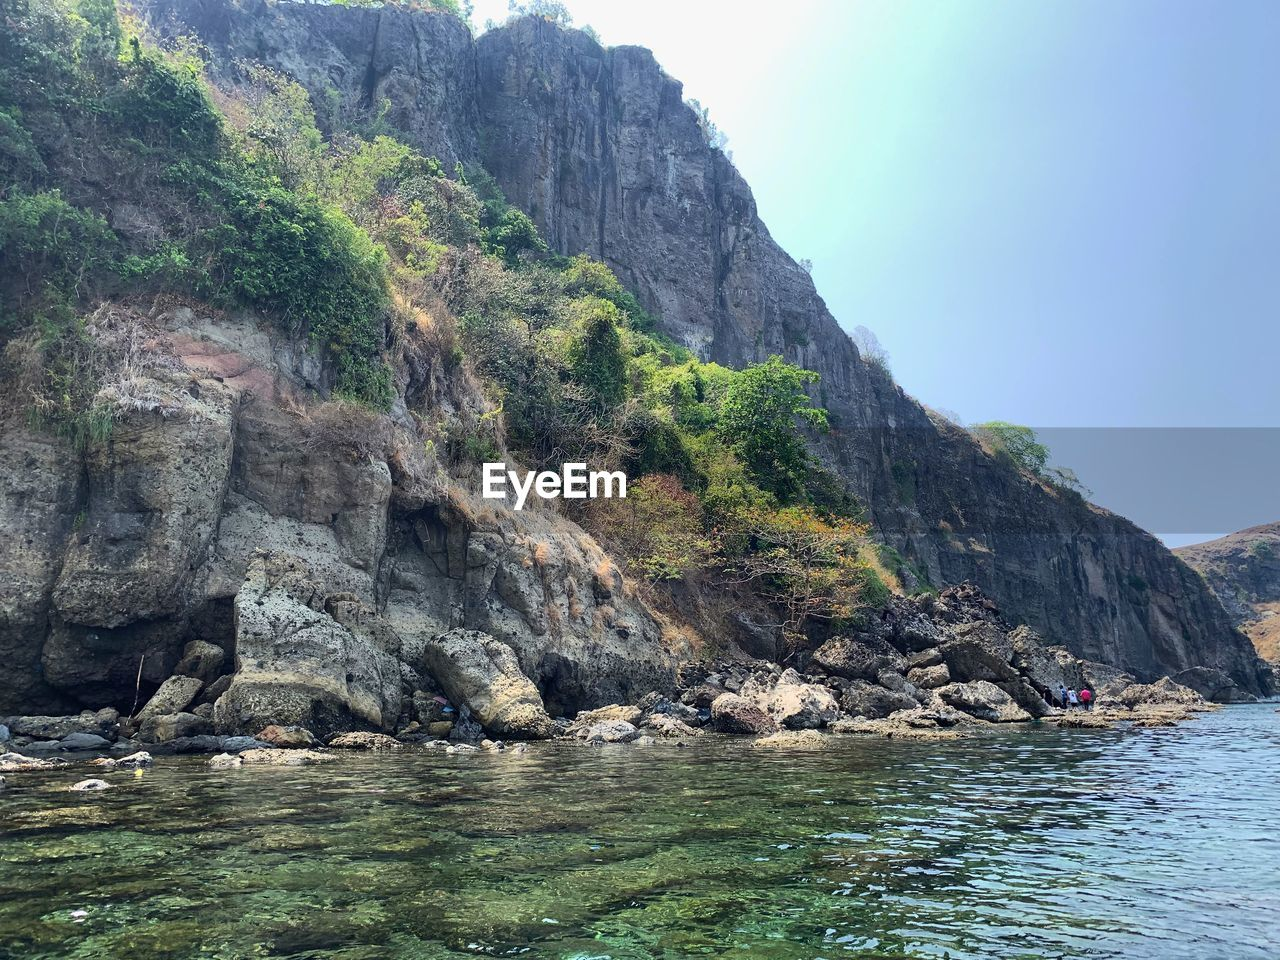 water, rock, mountain, beauty in nature, waterfront, scenics - nature, solid, rock - object, tranquility, nature, sea, rock formation, tranquil scene, sky, day, cliff, idyllic, land, no people, mountain range, outdoors, formation